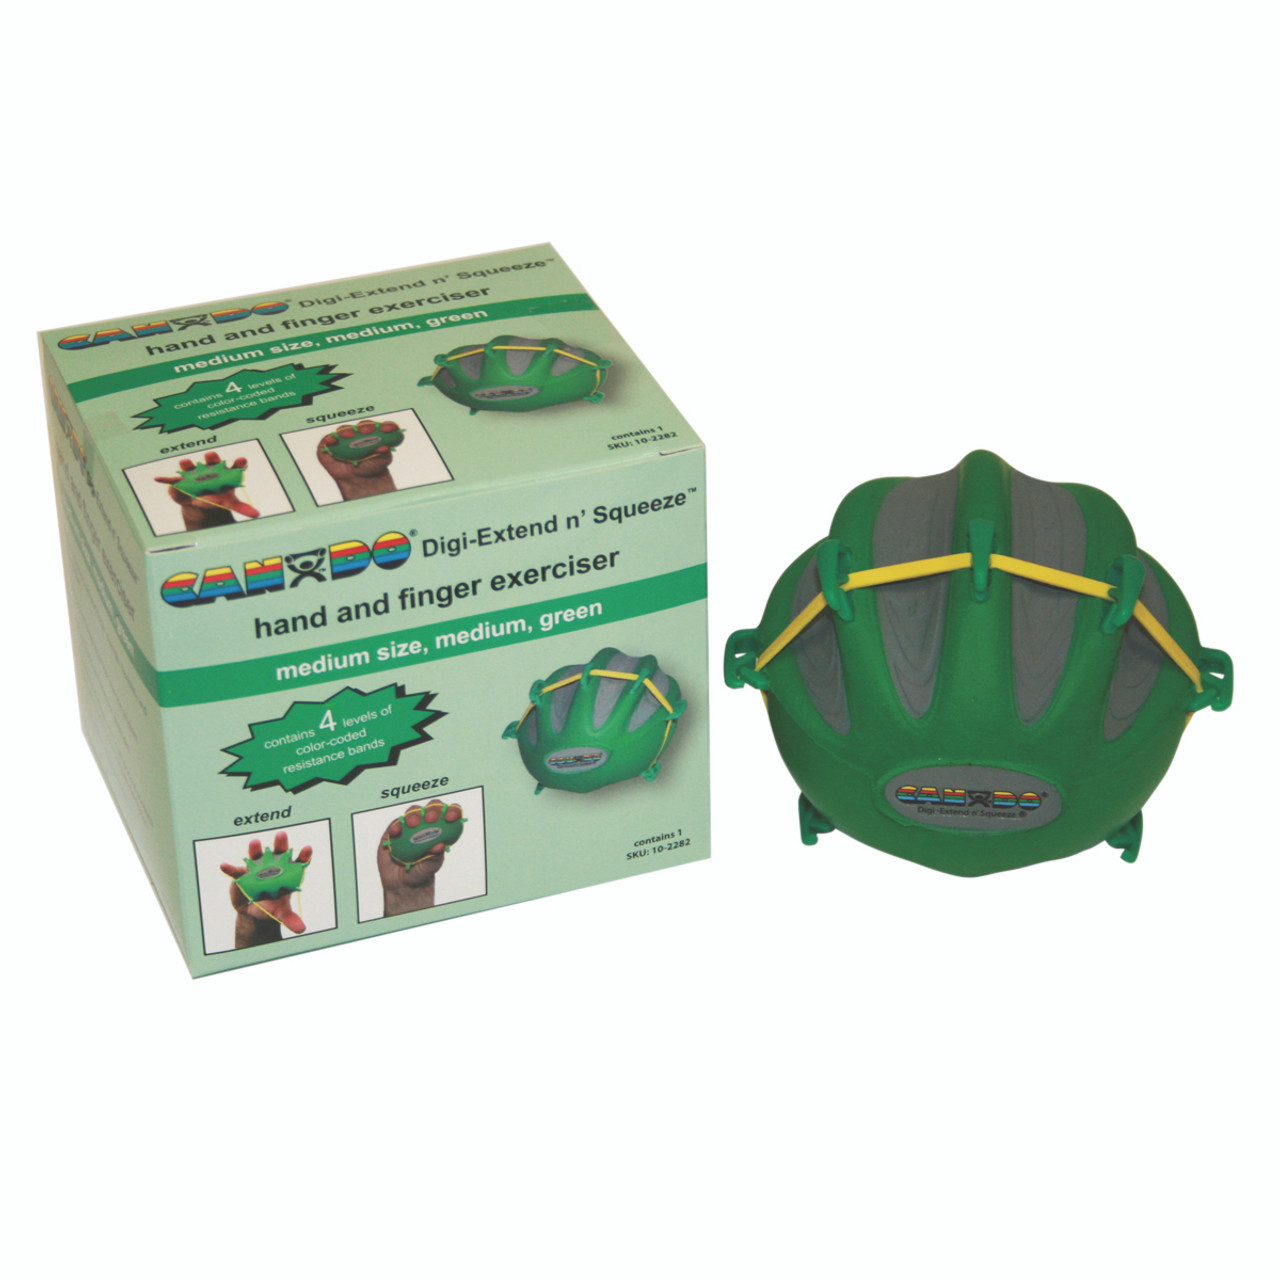 CanDo¨ Digi-Extend n' Squeeze¨ Hand Exerciser - Large - Green, moderate